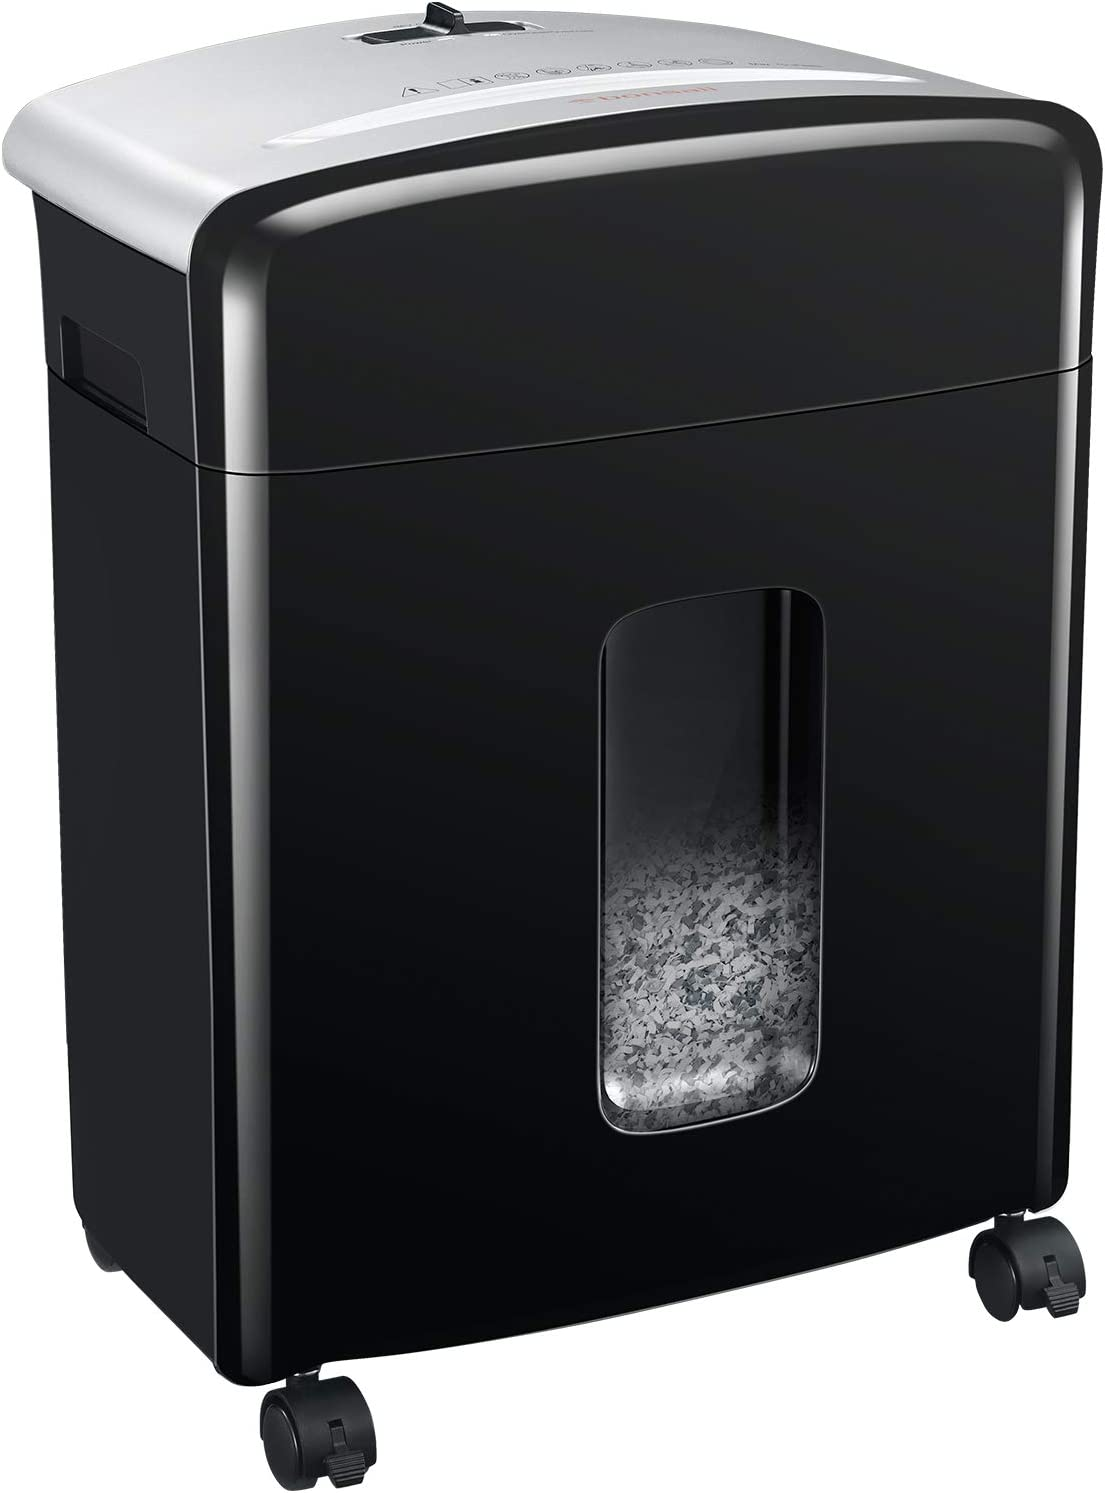 Bonsaii 10-Sheet High-Security Micro-Cut Paper Shredder, Credit Card/Staples/Clips Shredders for Office and Home Use, 3.5-Gallon Pullout Wastebasket with Large Transparent Window (C220-B) : Electronics